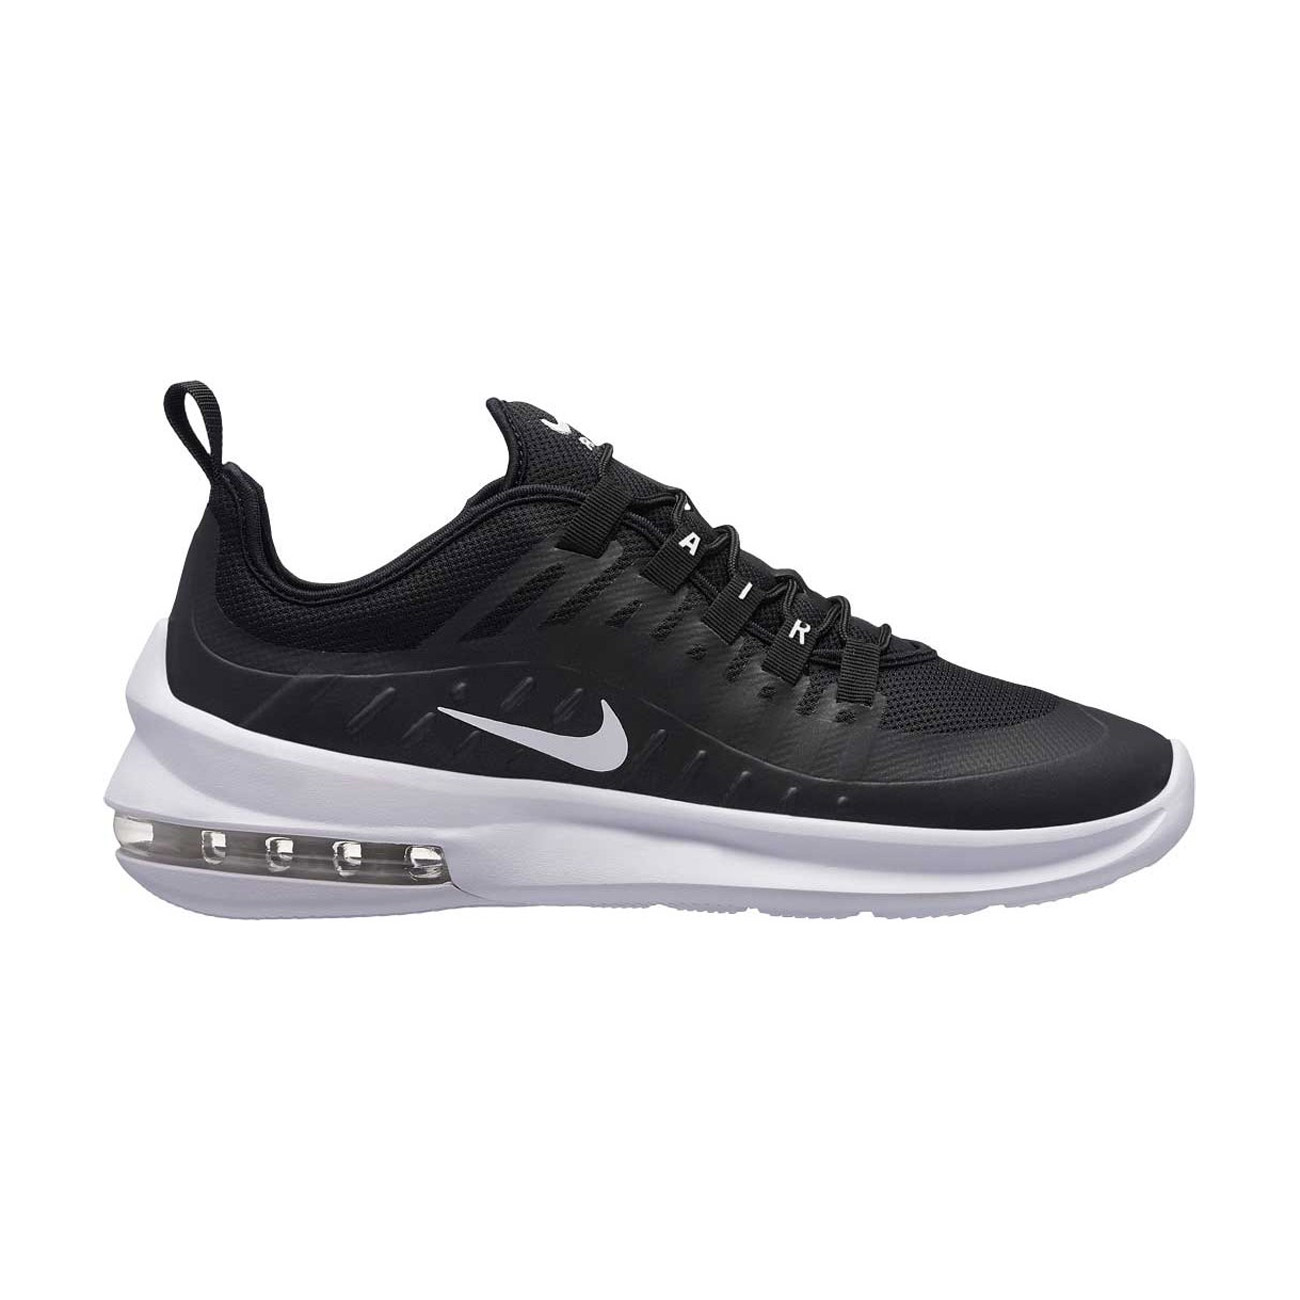 a9d05a687d Nike Men's Air Max Axis Trainers - Black/White   Men's Running Shoes ...